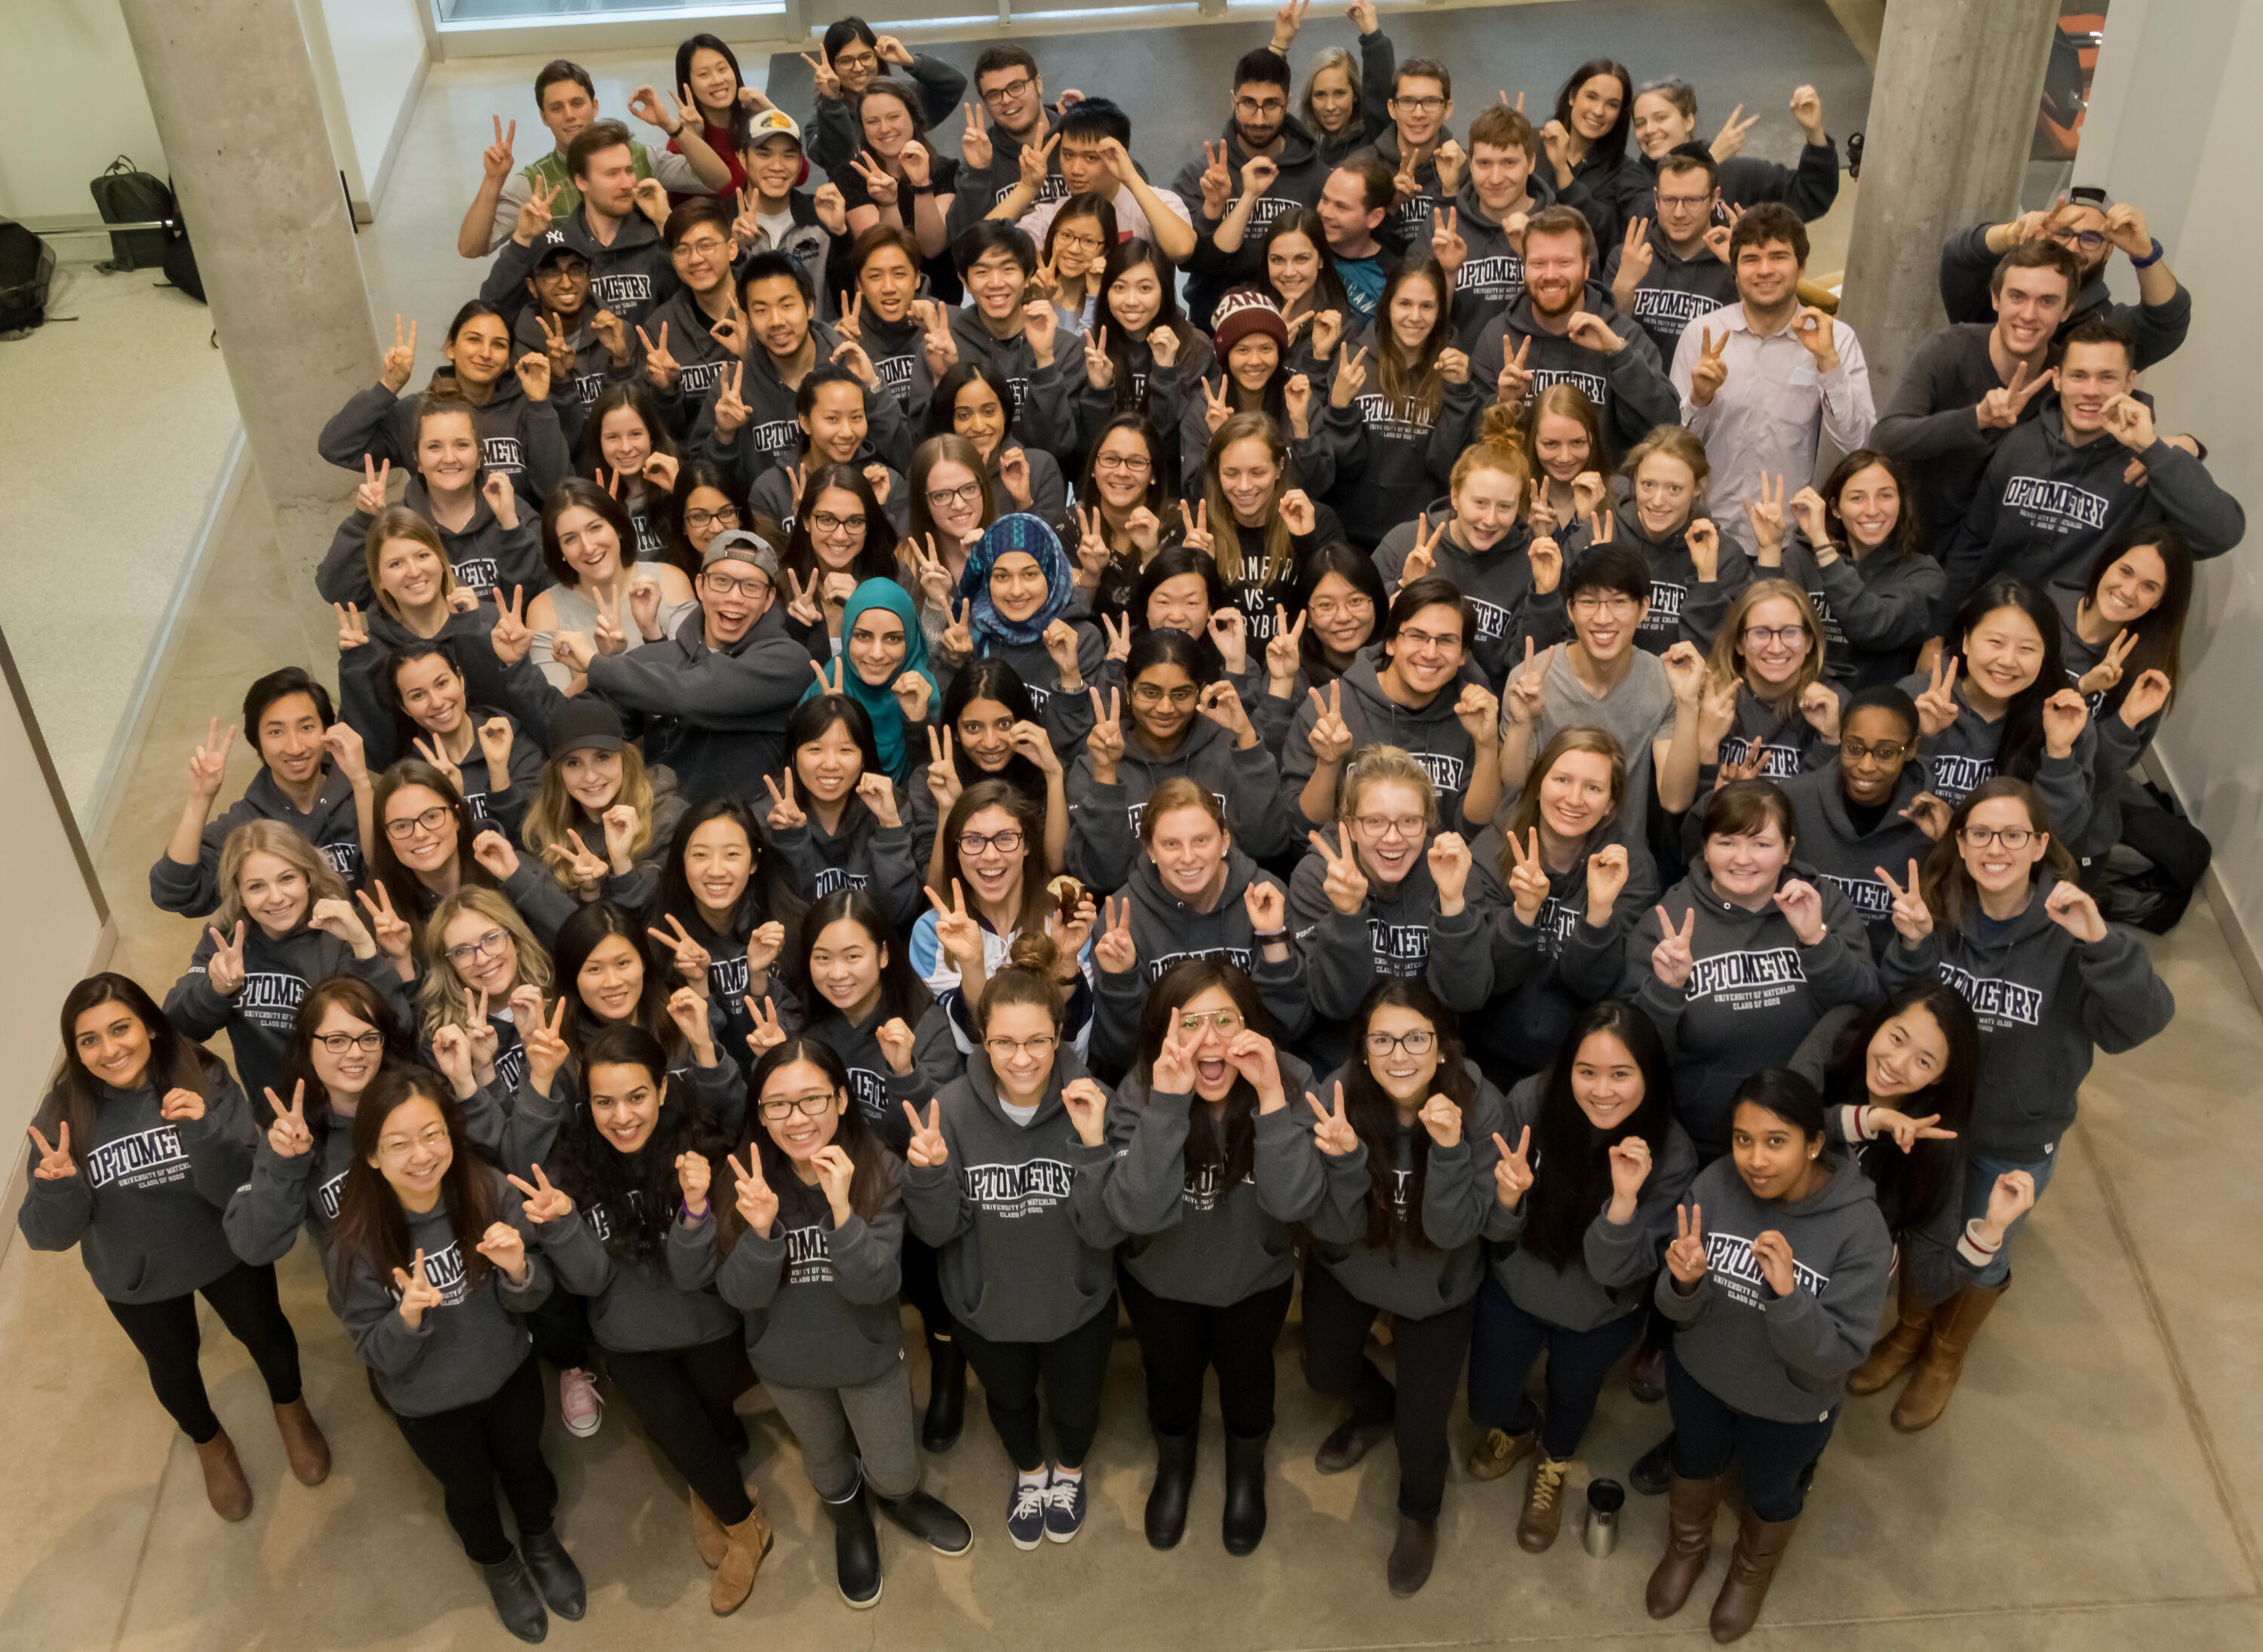 A crowd of Optometry students wearing grey hoodies wave at the camera above them